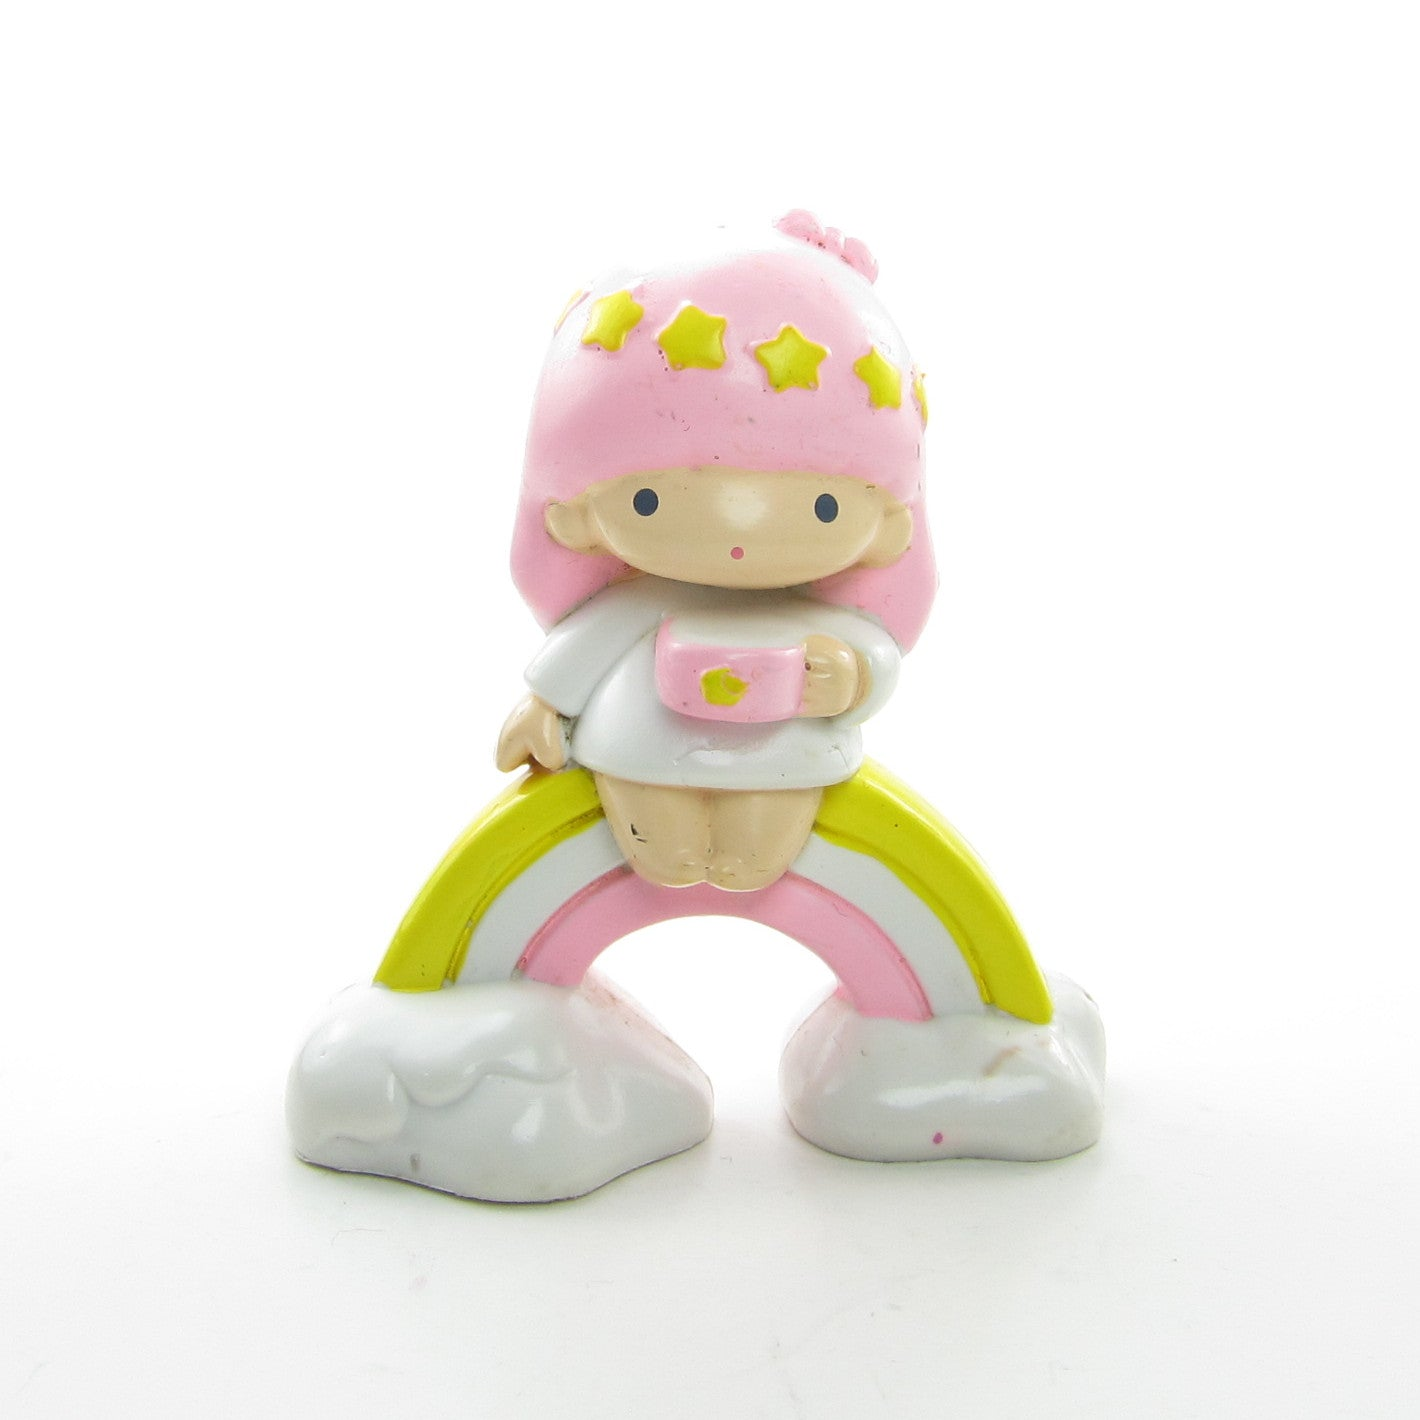 Little Twin Stars figurine with Lala sitting on a rainbow